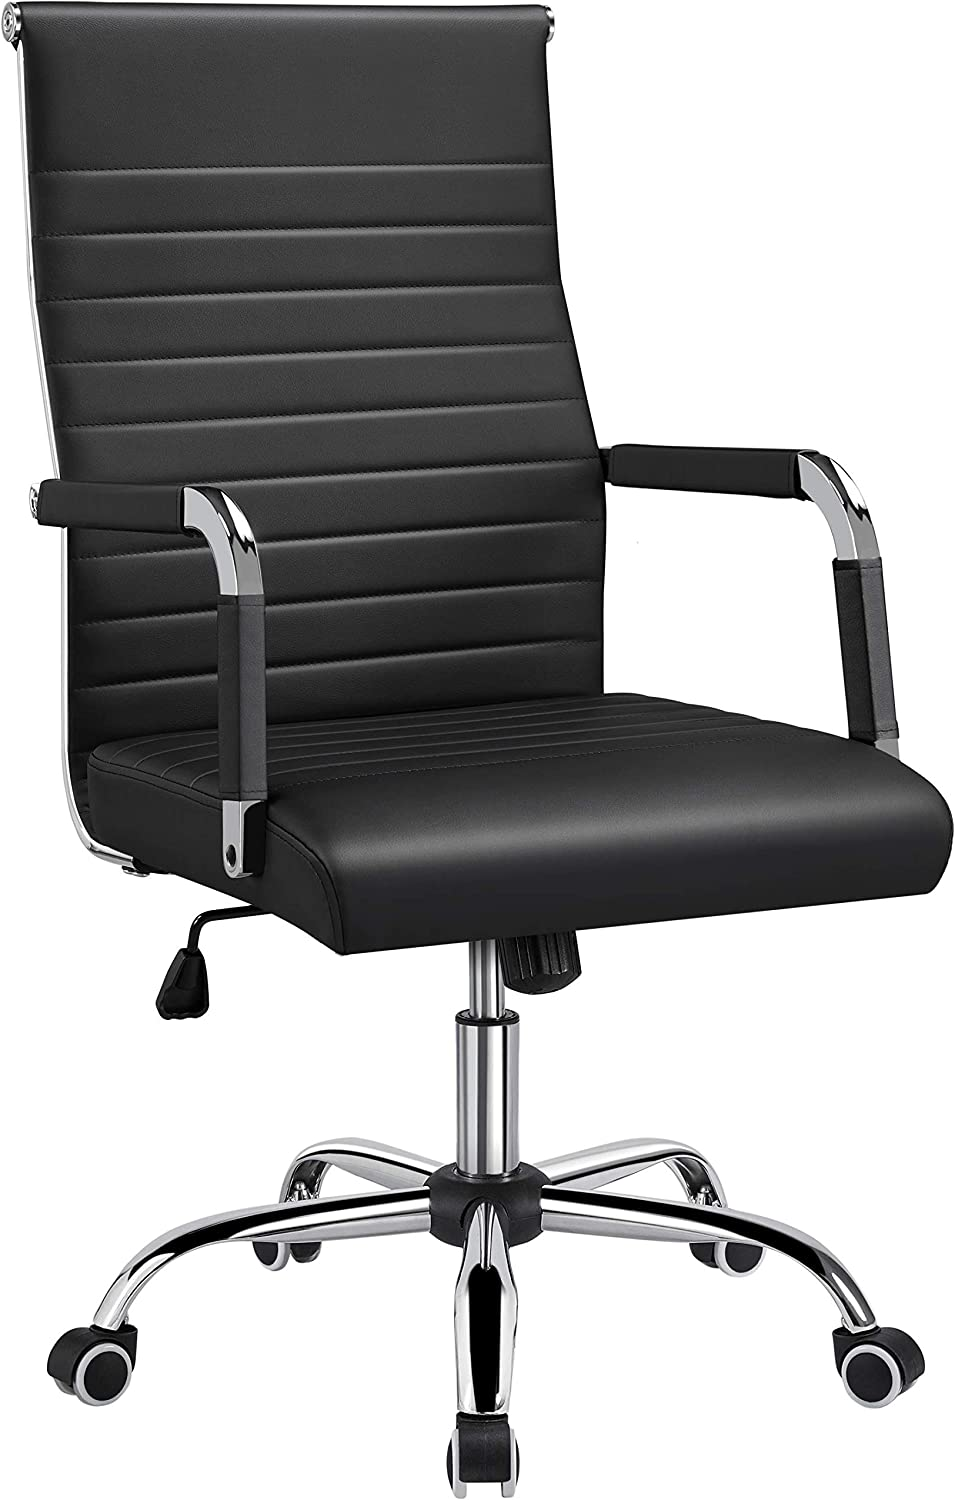 Yaheetech Office Desk Chair Ribbed Conference Executive Cha Task Jacksonville 2021 autumn and winter new Mall